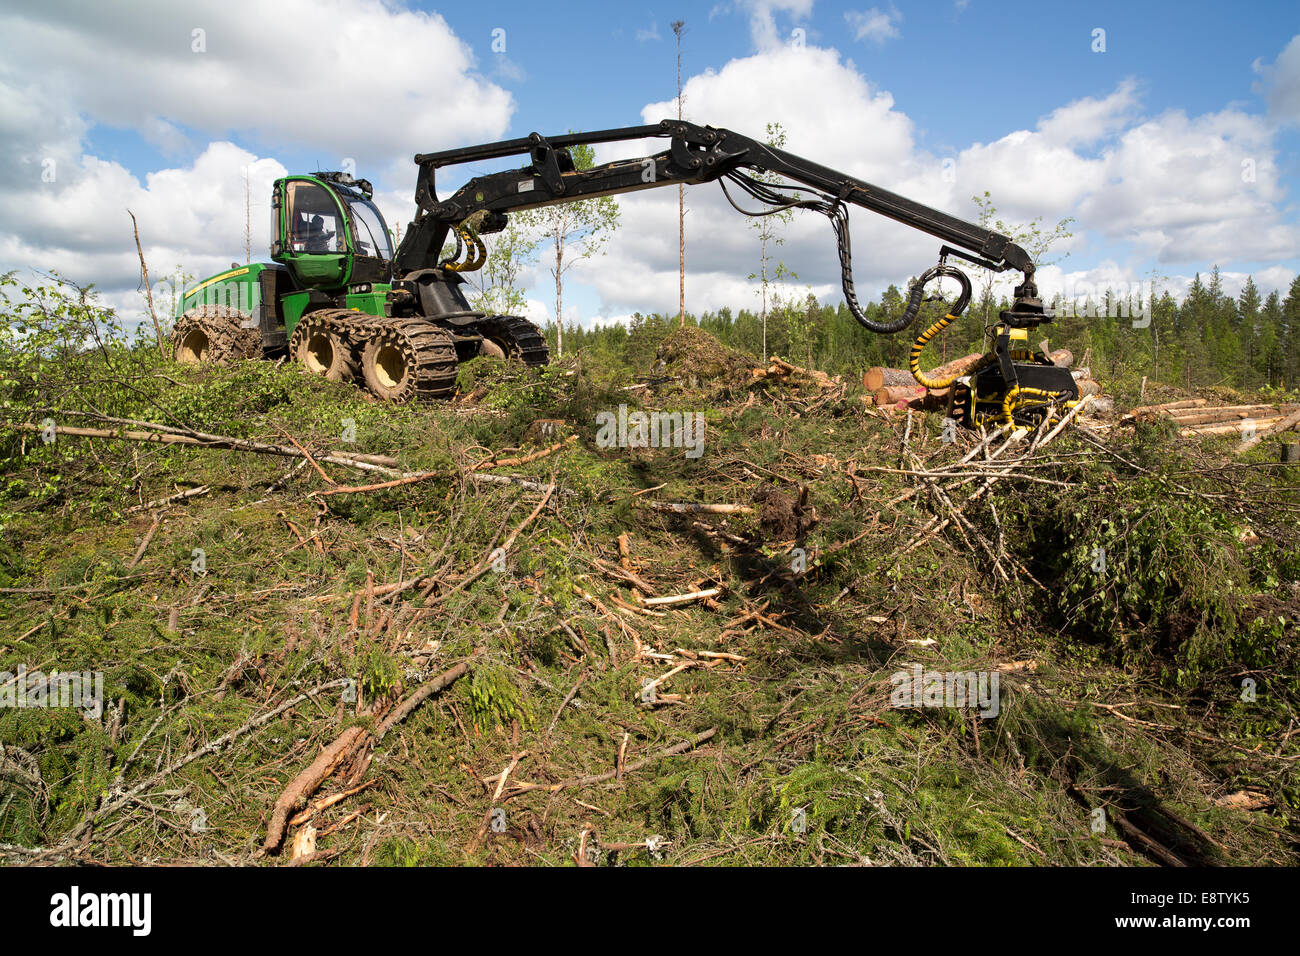 Green John Deere 1170E forest harvester at clear cutting area , Finland - Stock Image